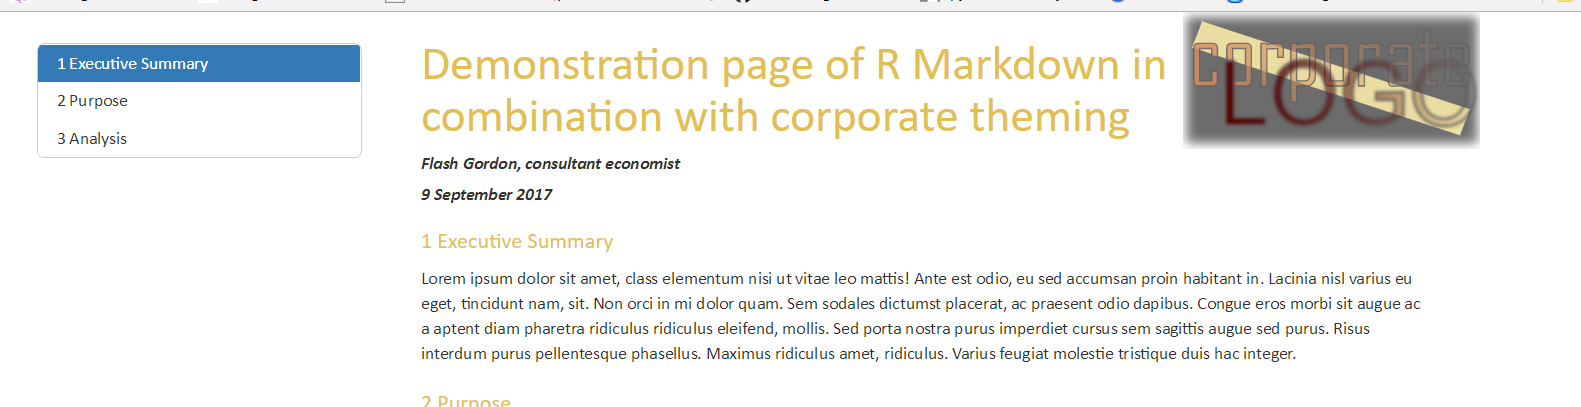 R Markdown for documents with logos, watermarks, and corporate styles